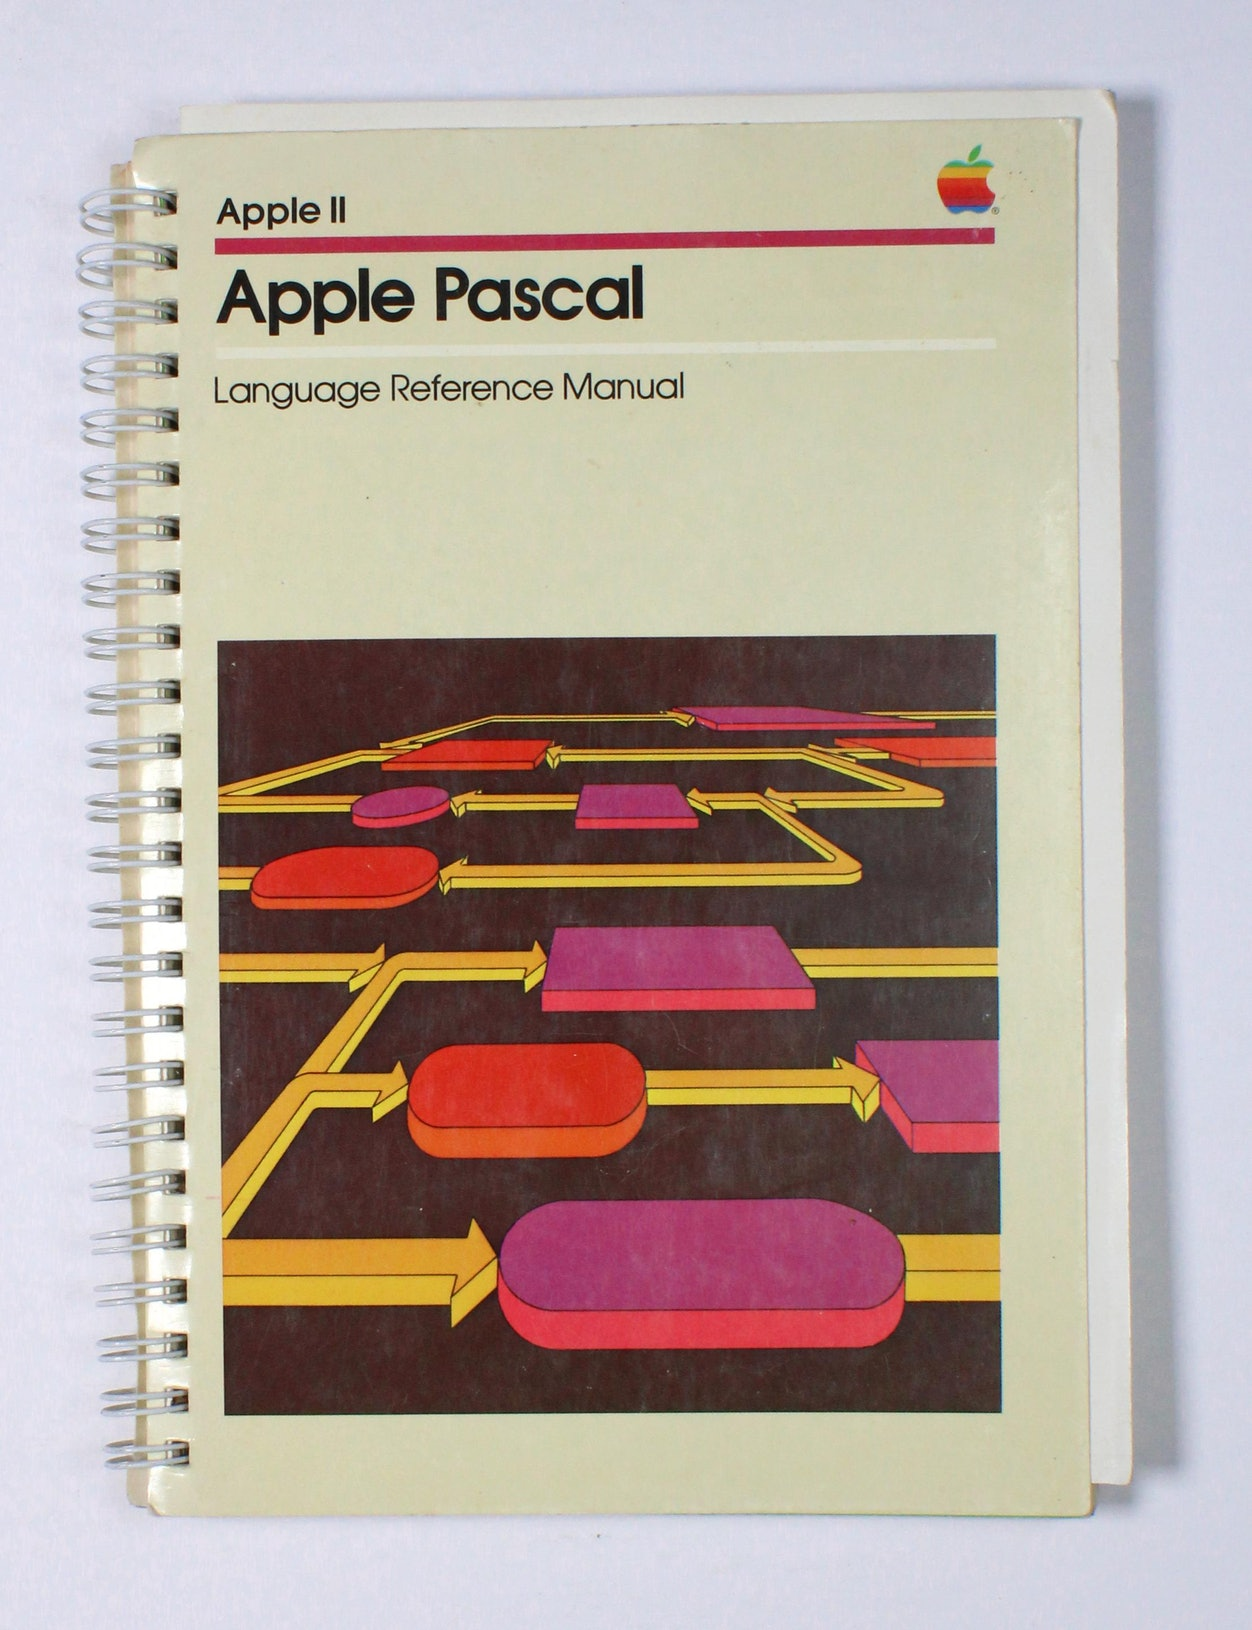 Apple Pascal Language Reference Manual for Apple II